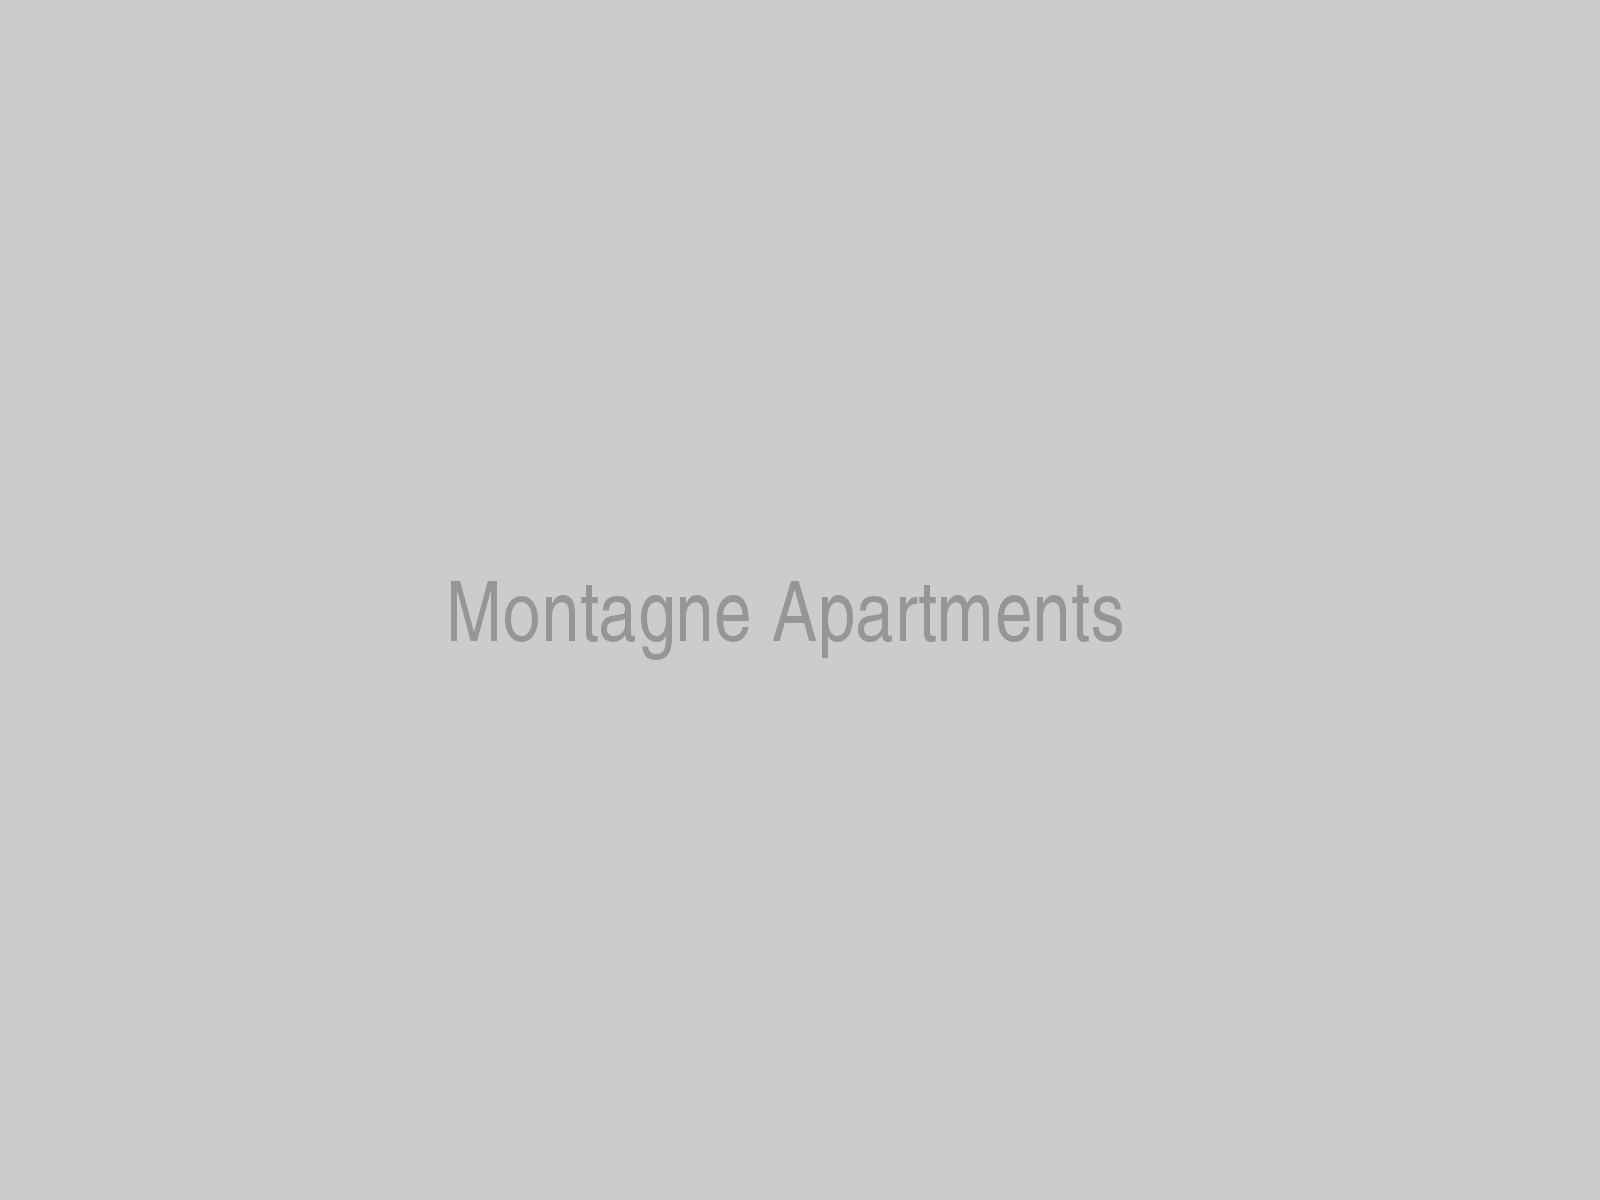 Montagne Apartments